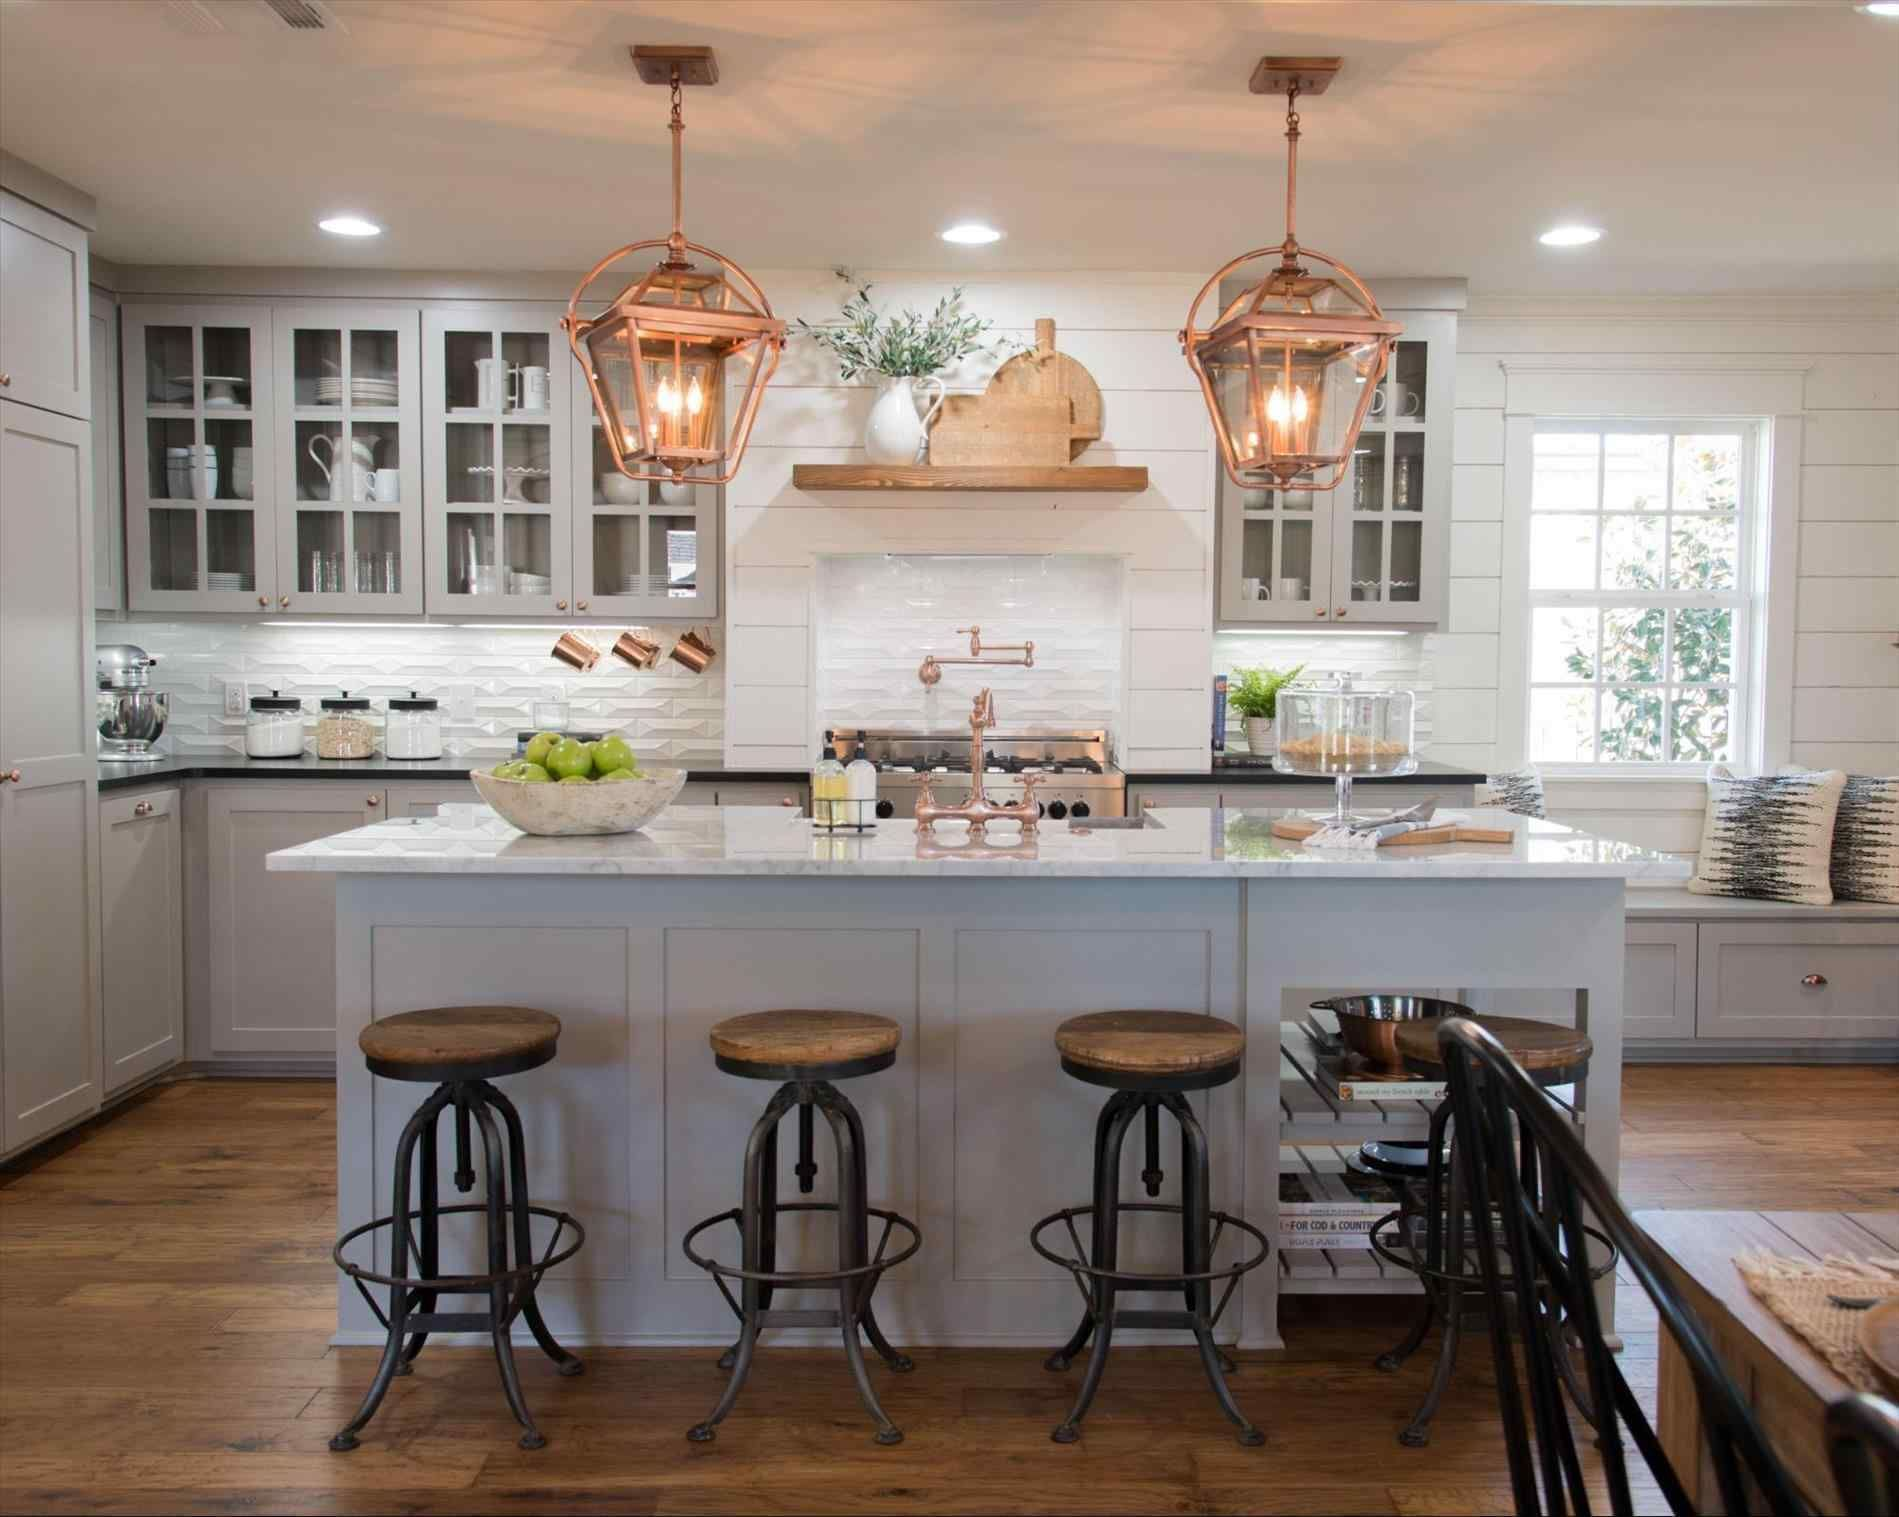 Glomorous Decoration Joanna Gaines Kitchen Ideas French Country Pendantisland Decoration Joanna Gaines Kitch Kitchen Remodel Fixer Upper Kitchen Kitchen Design